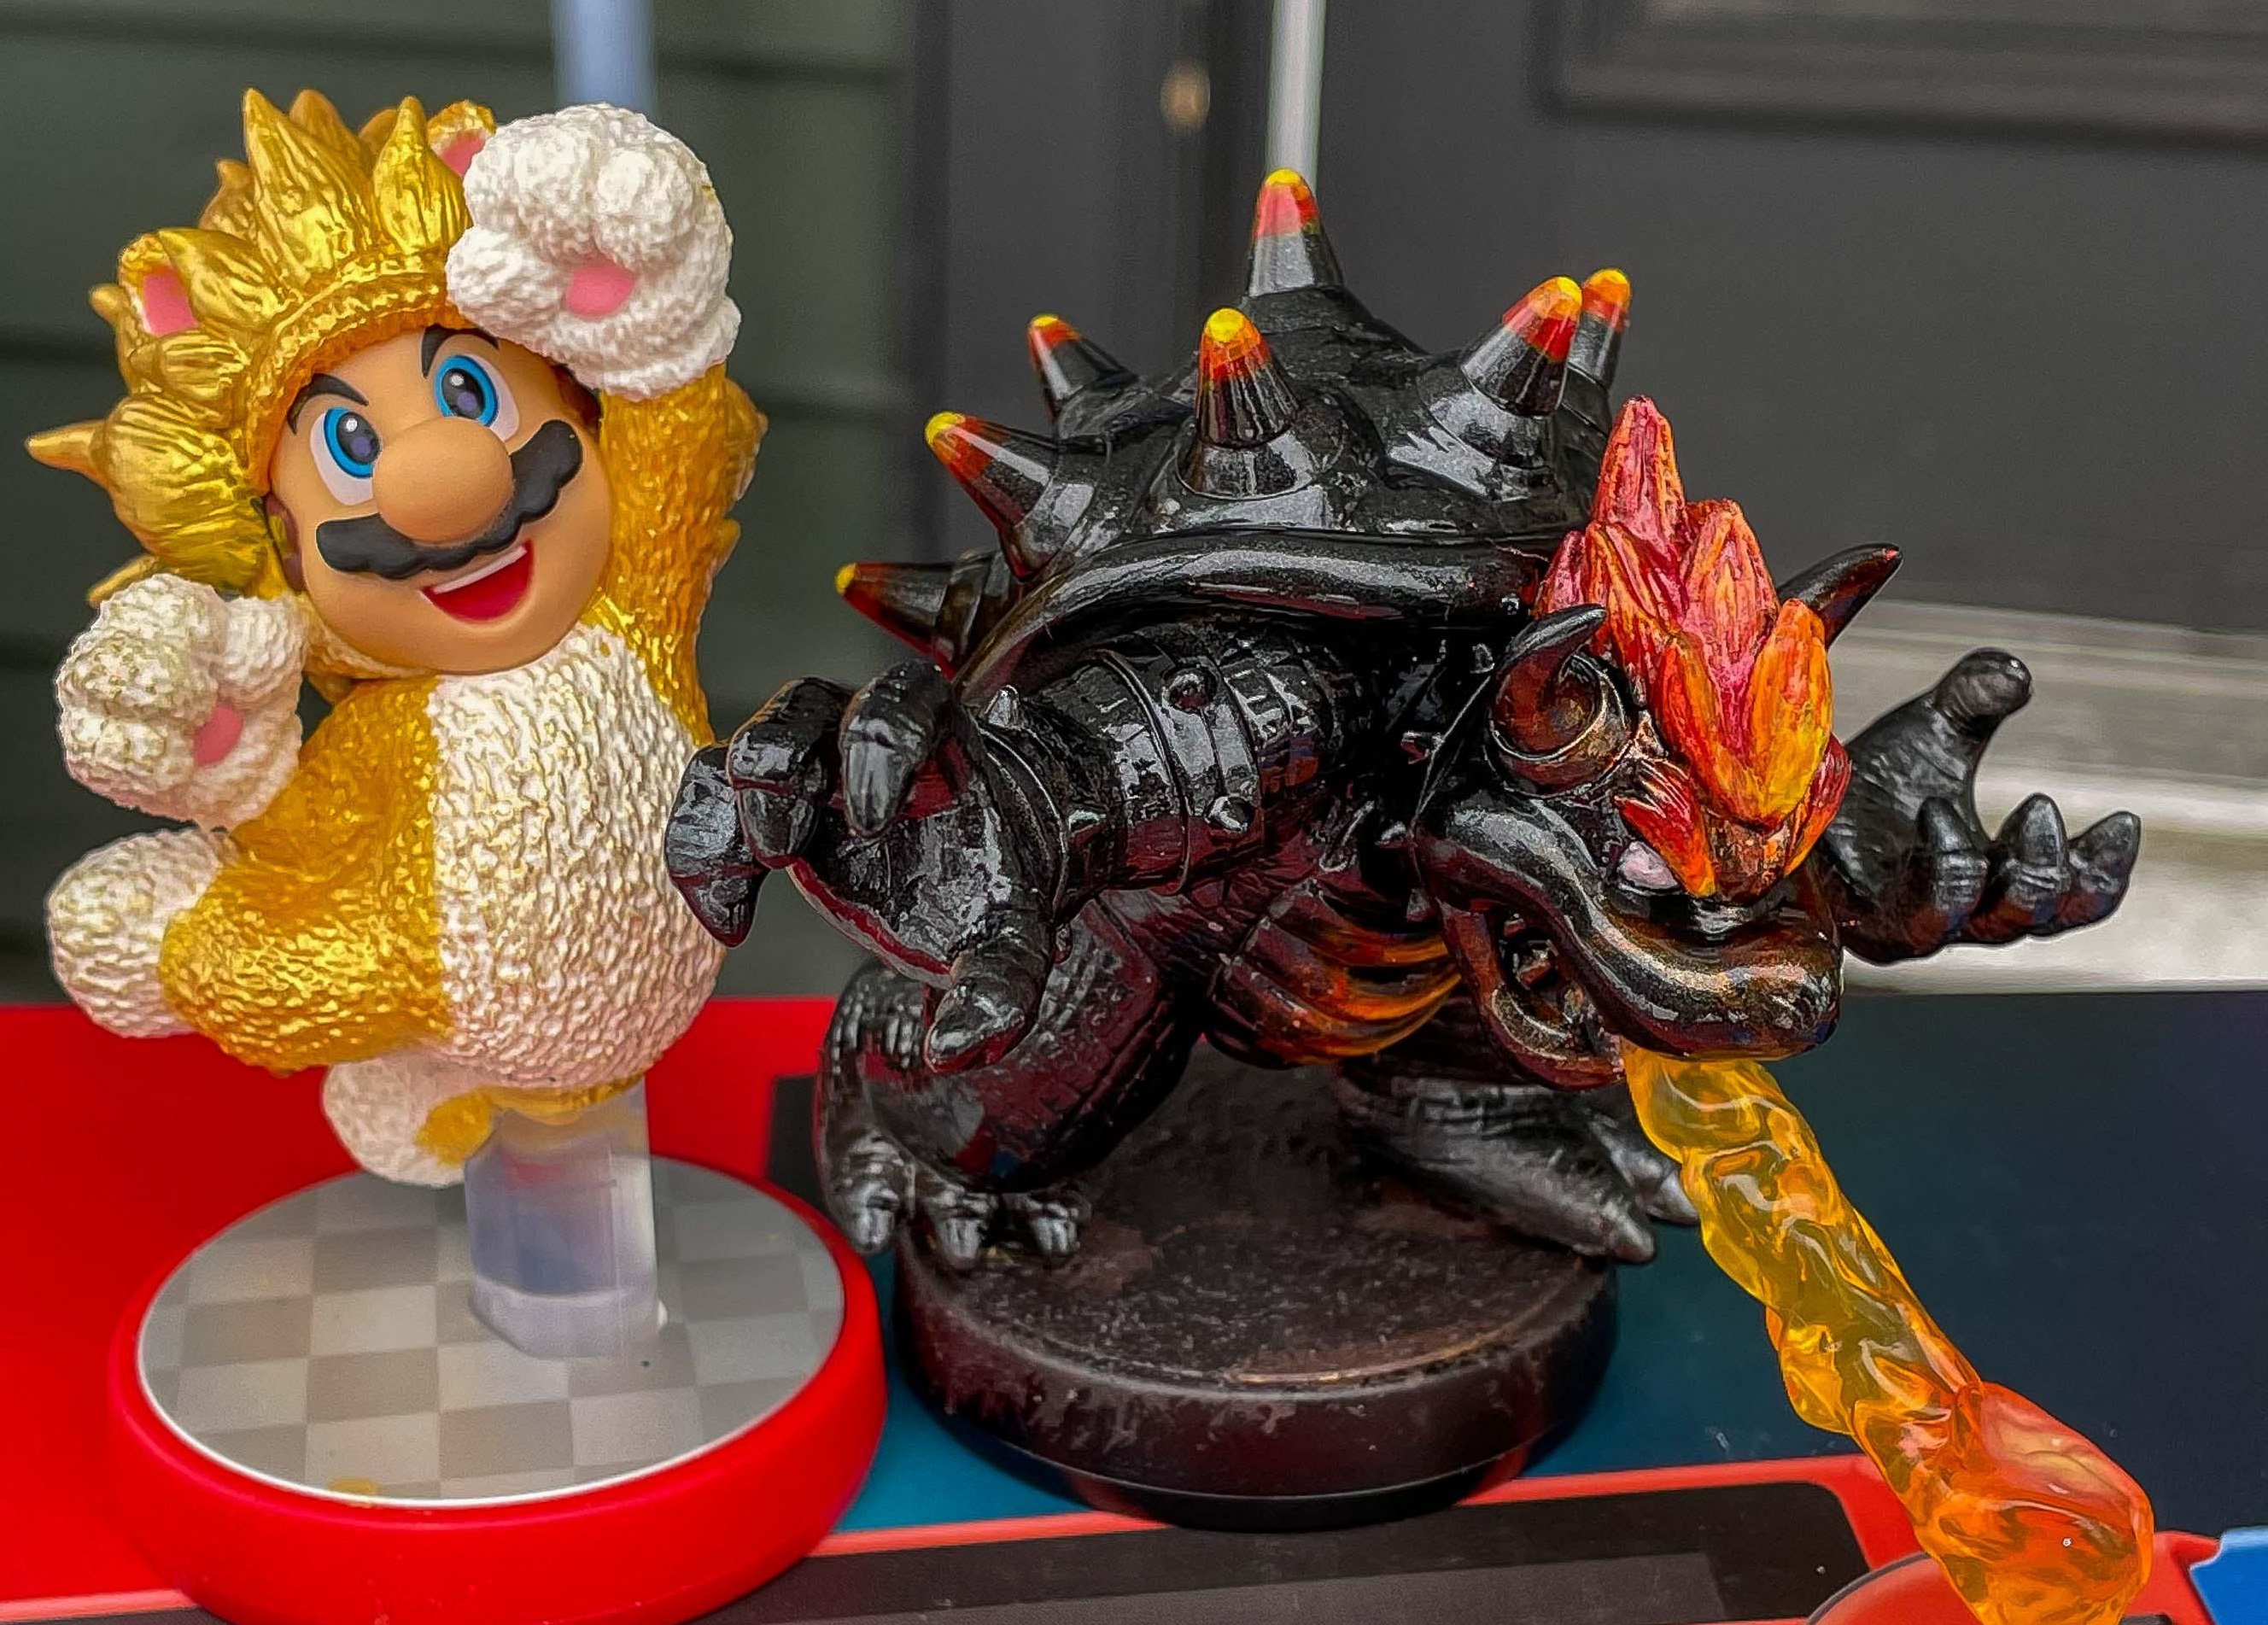 If amiibo were still in their heyday, we probably would have officially gotten these Bowser's Fury fan creations screenshot